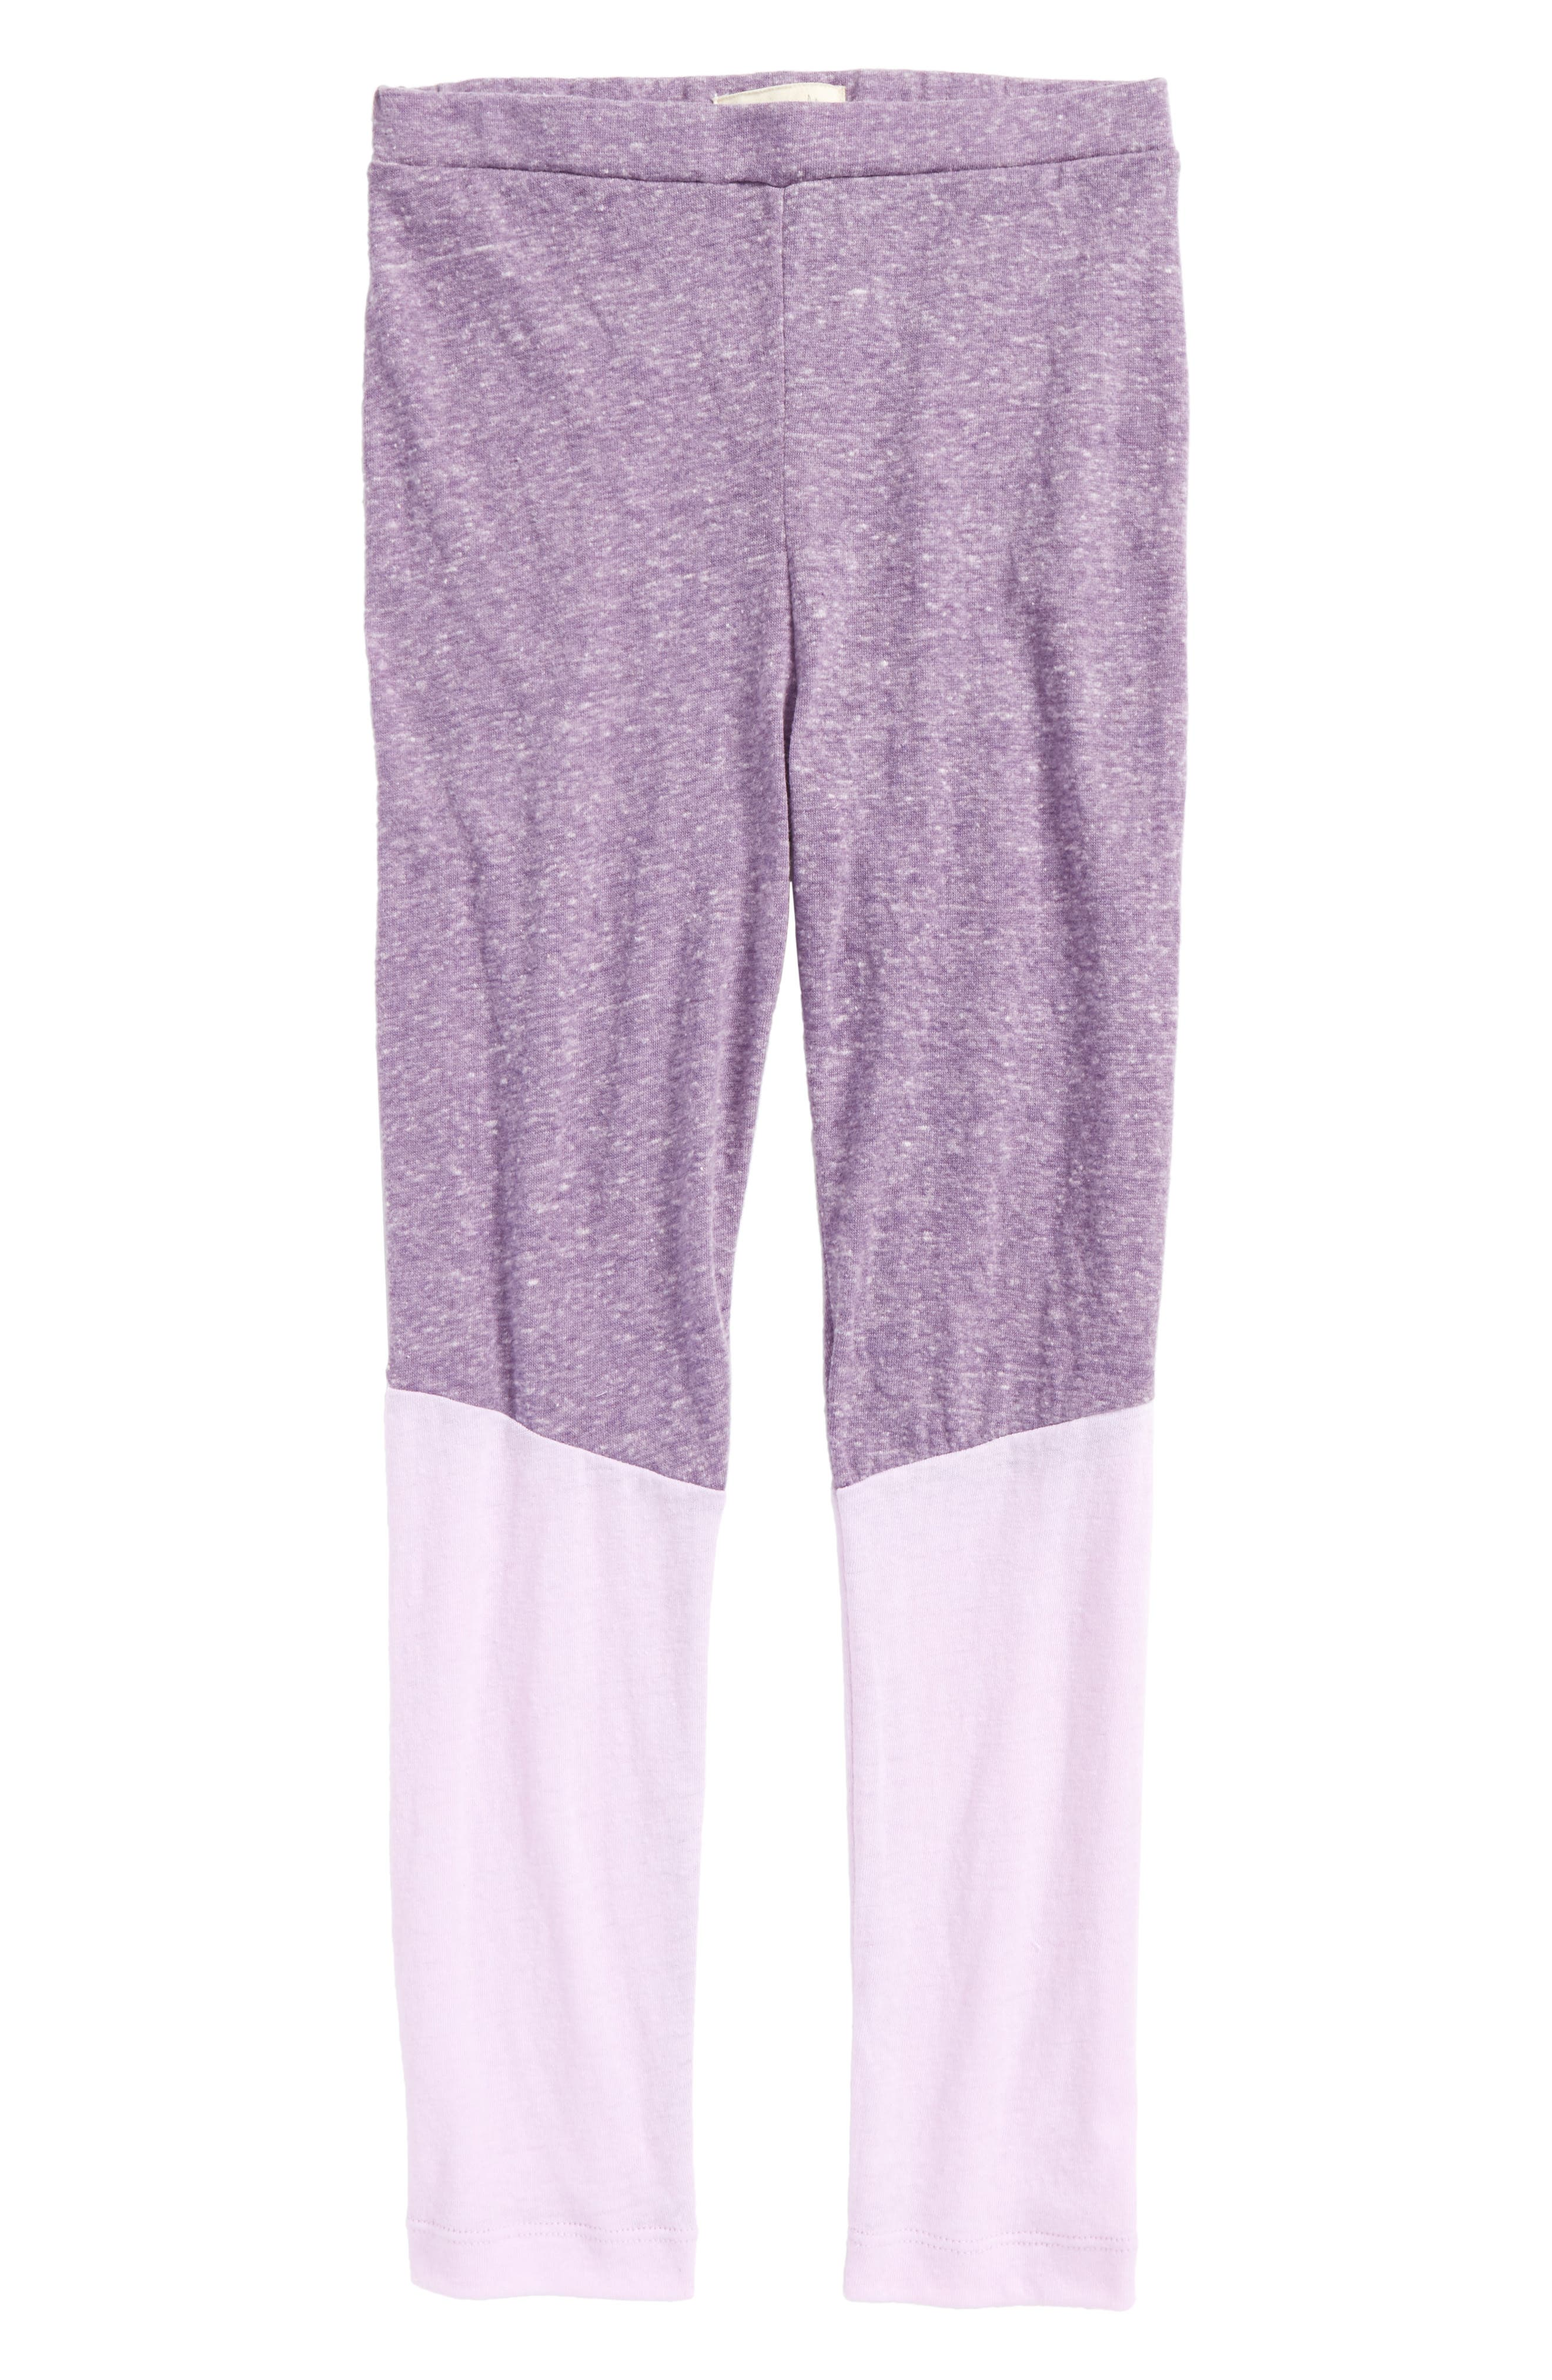 Miki Miette Austen Color Block Leggings (Toddler Girls & Little Girls)